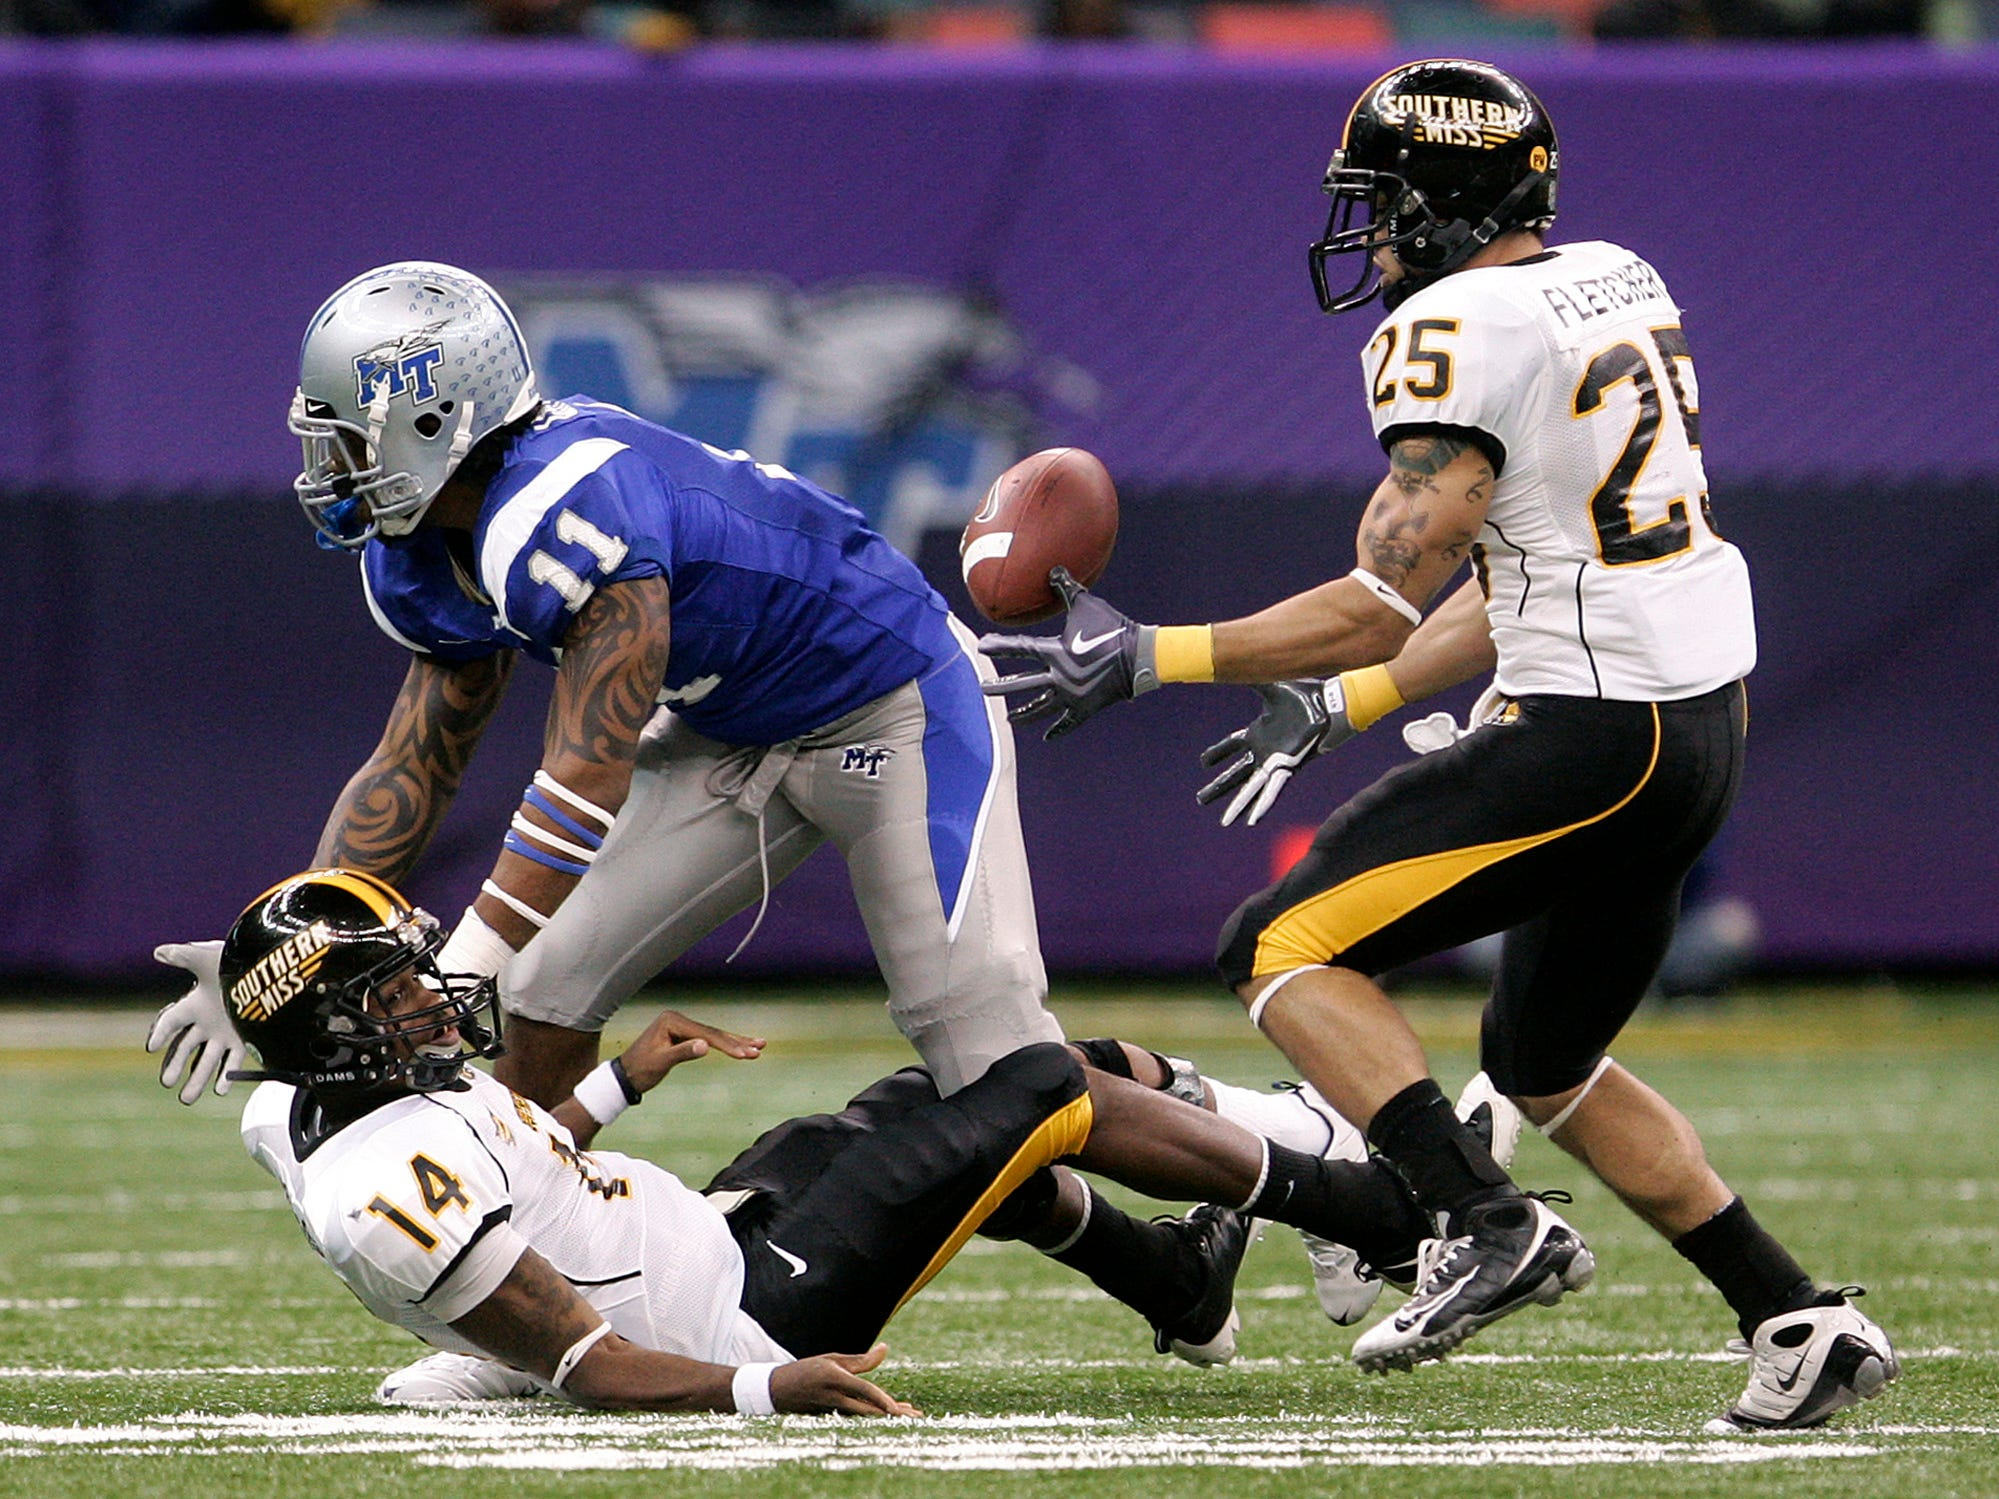 Southern Mississippi's Damion Fletcher (25) retrieves the ball after quarterback Martevious Young (14) fumbled while being tackled by MTSU's Jamari Lattimore (11) during the first half of the New Orleans Bowl on Dec. 20, 2009.